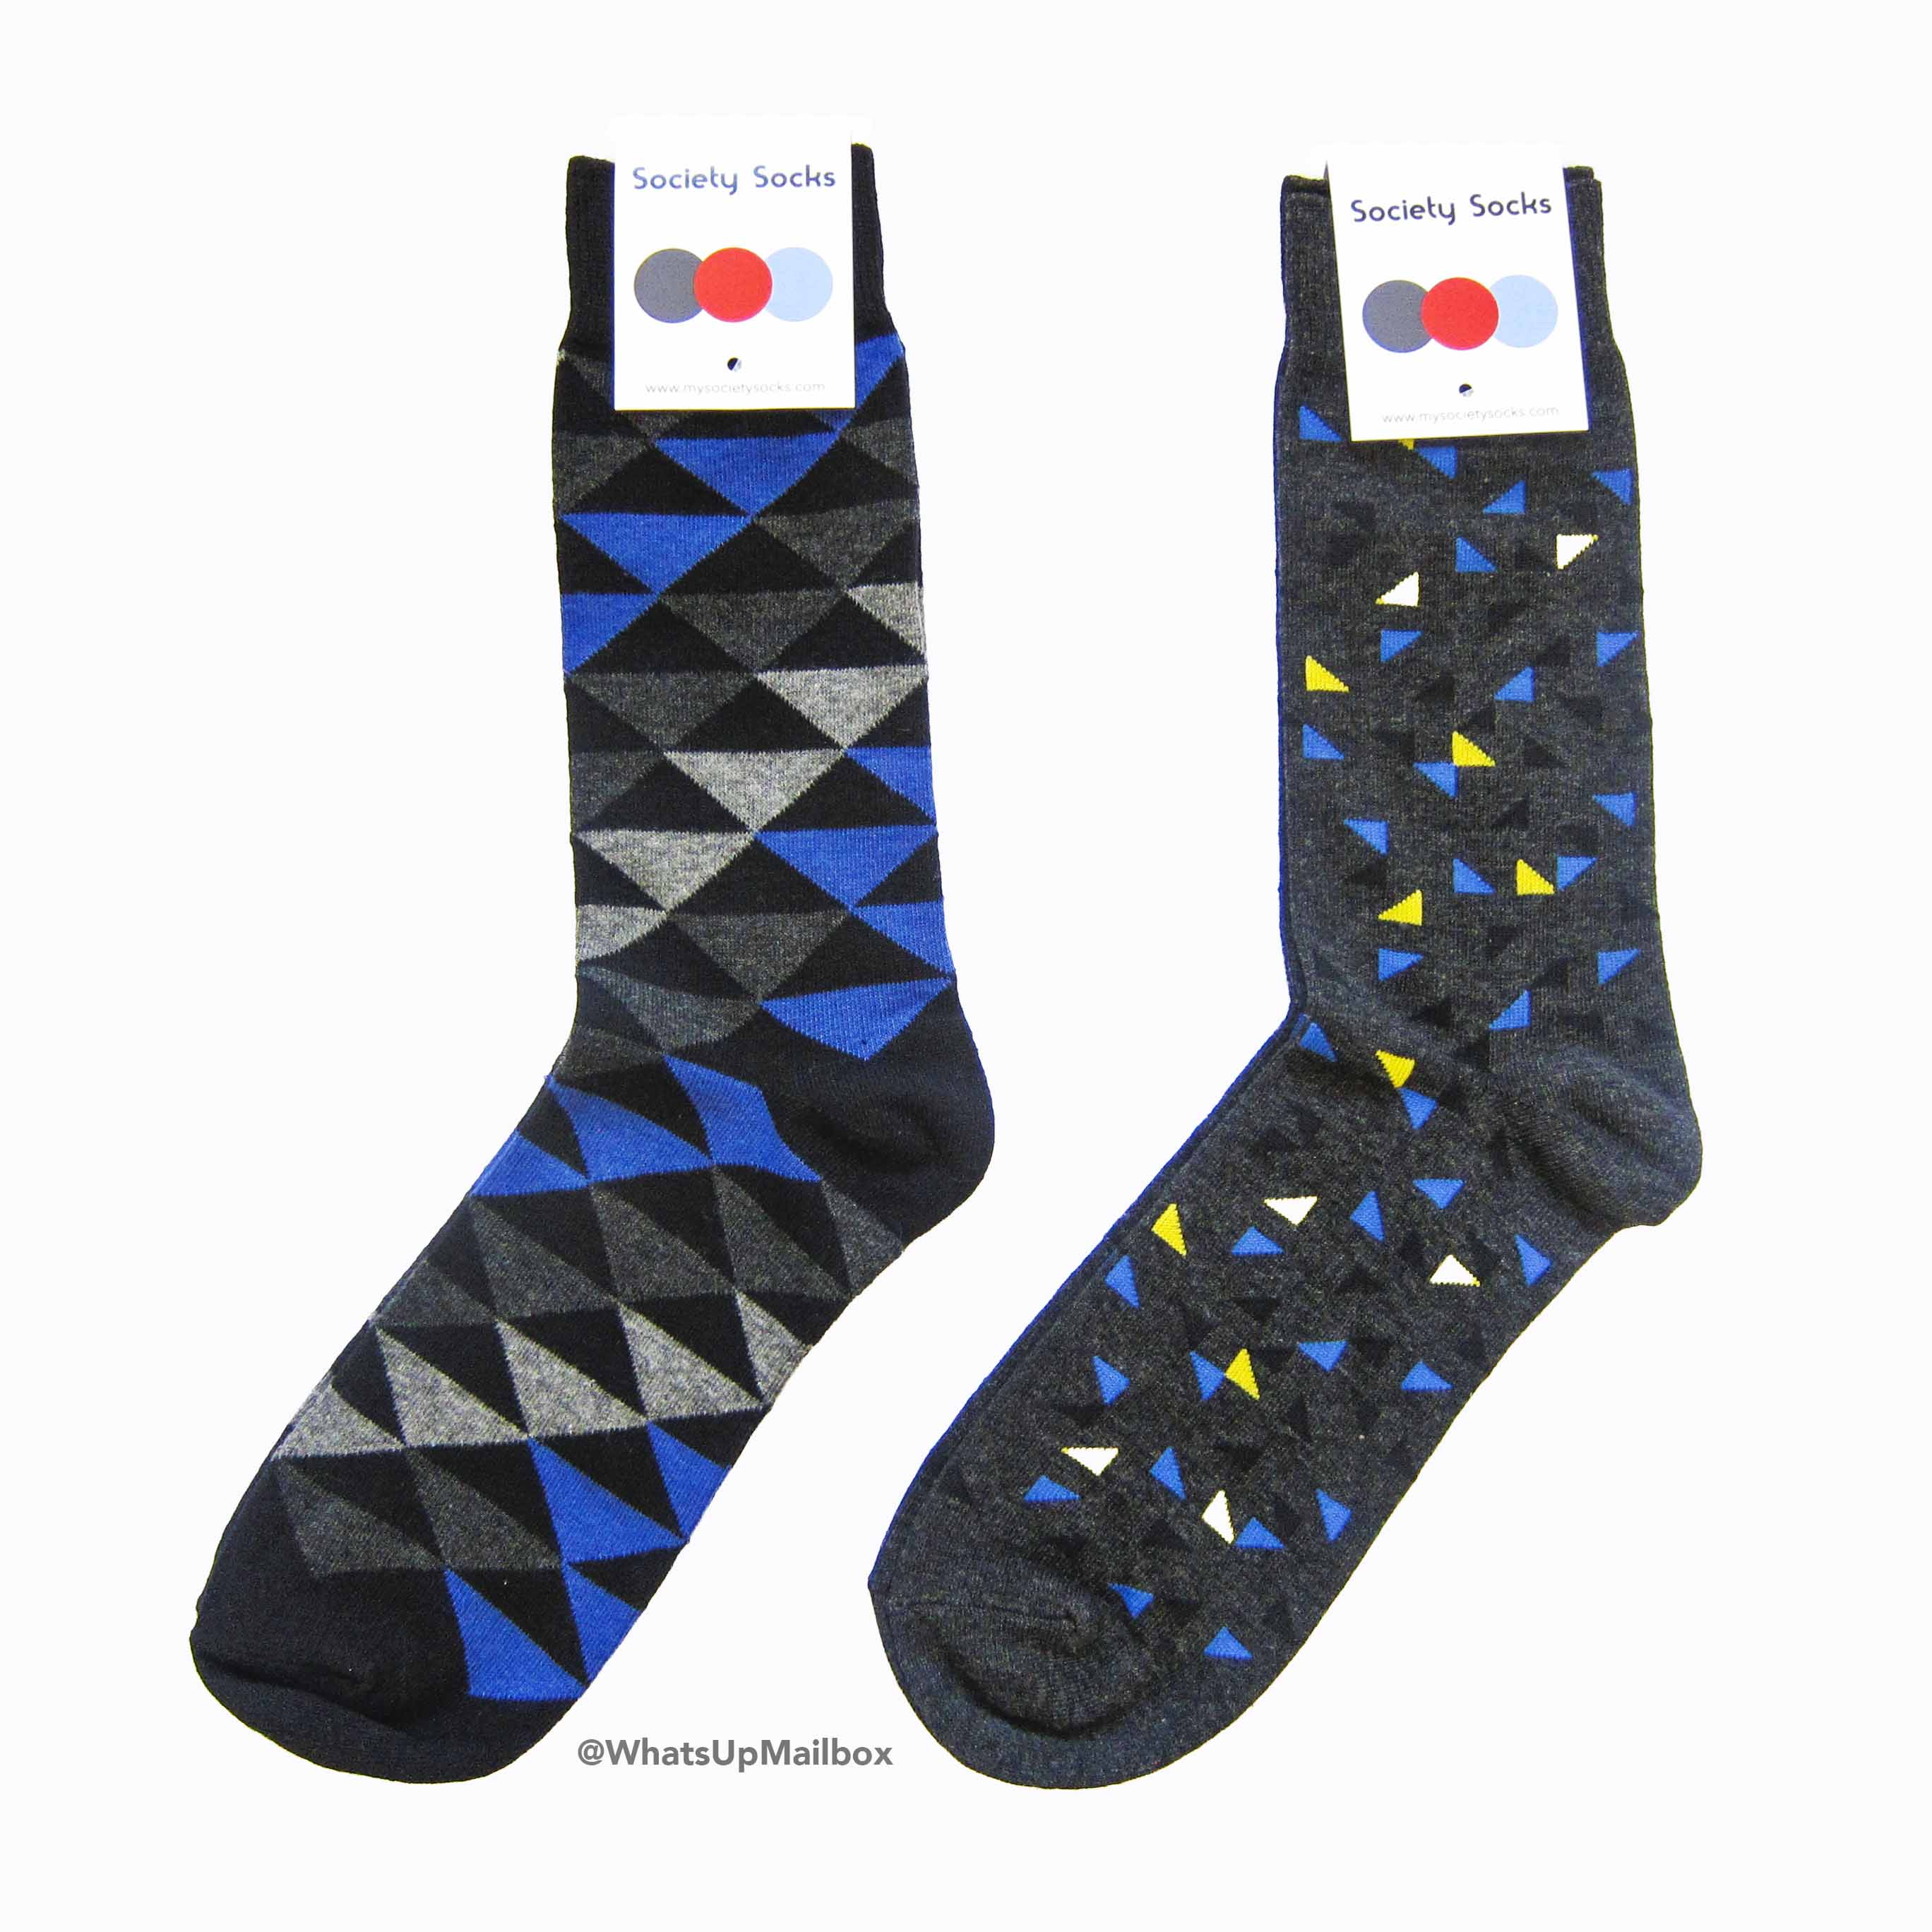 Society Socks August 2016 Items